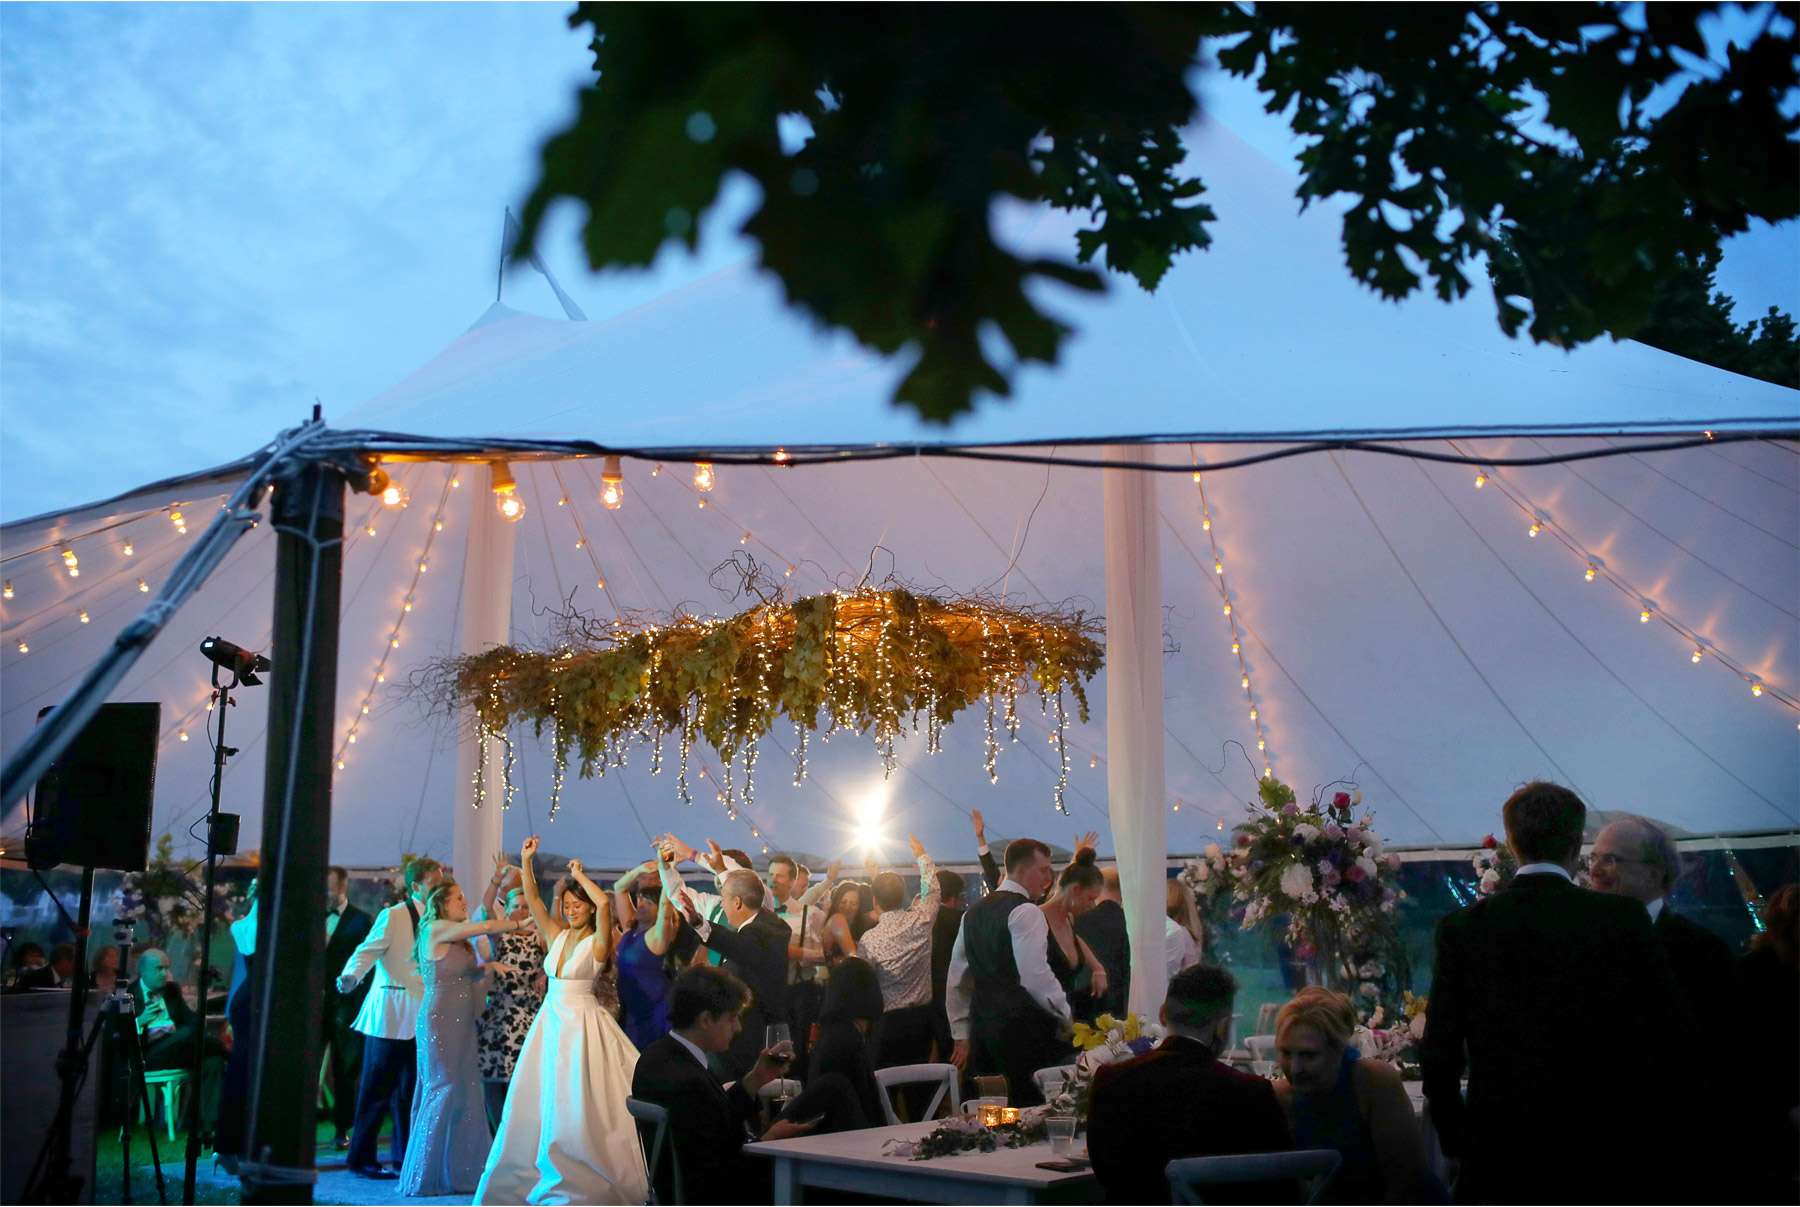 24-Vick-Photography-Wedding-Stouts-Island-Lodge-Wisconsin-Summer-Reception-Outdoor-Dancing-MiJa-and-Lucius.jpg